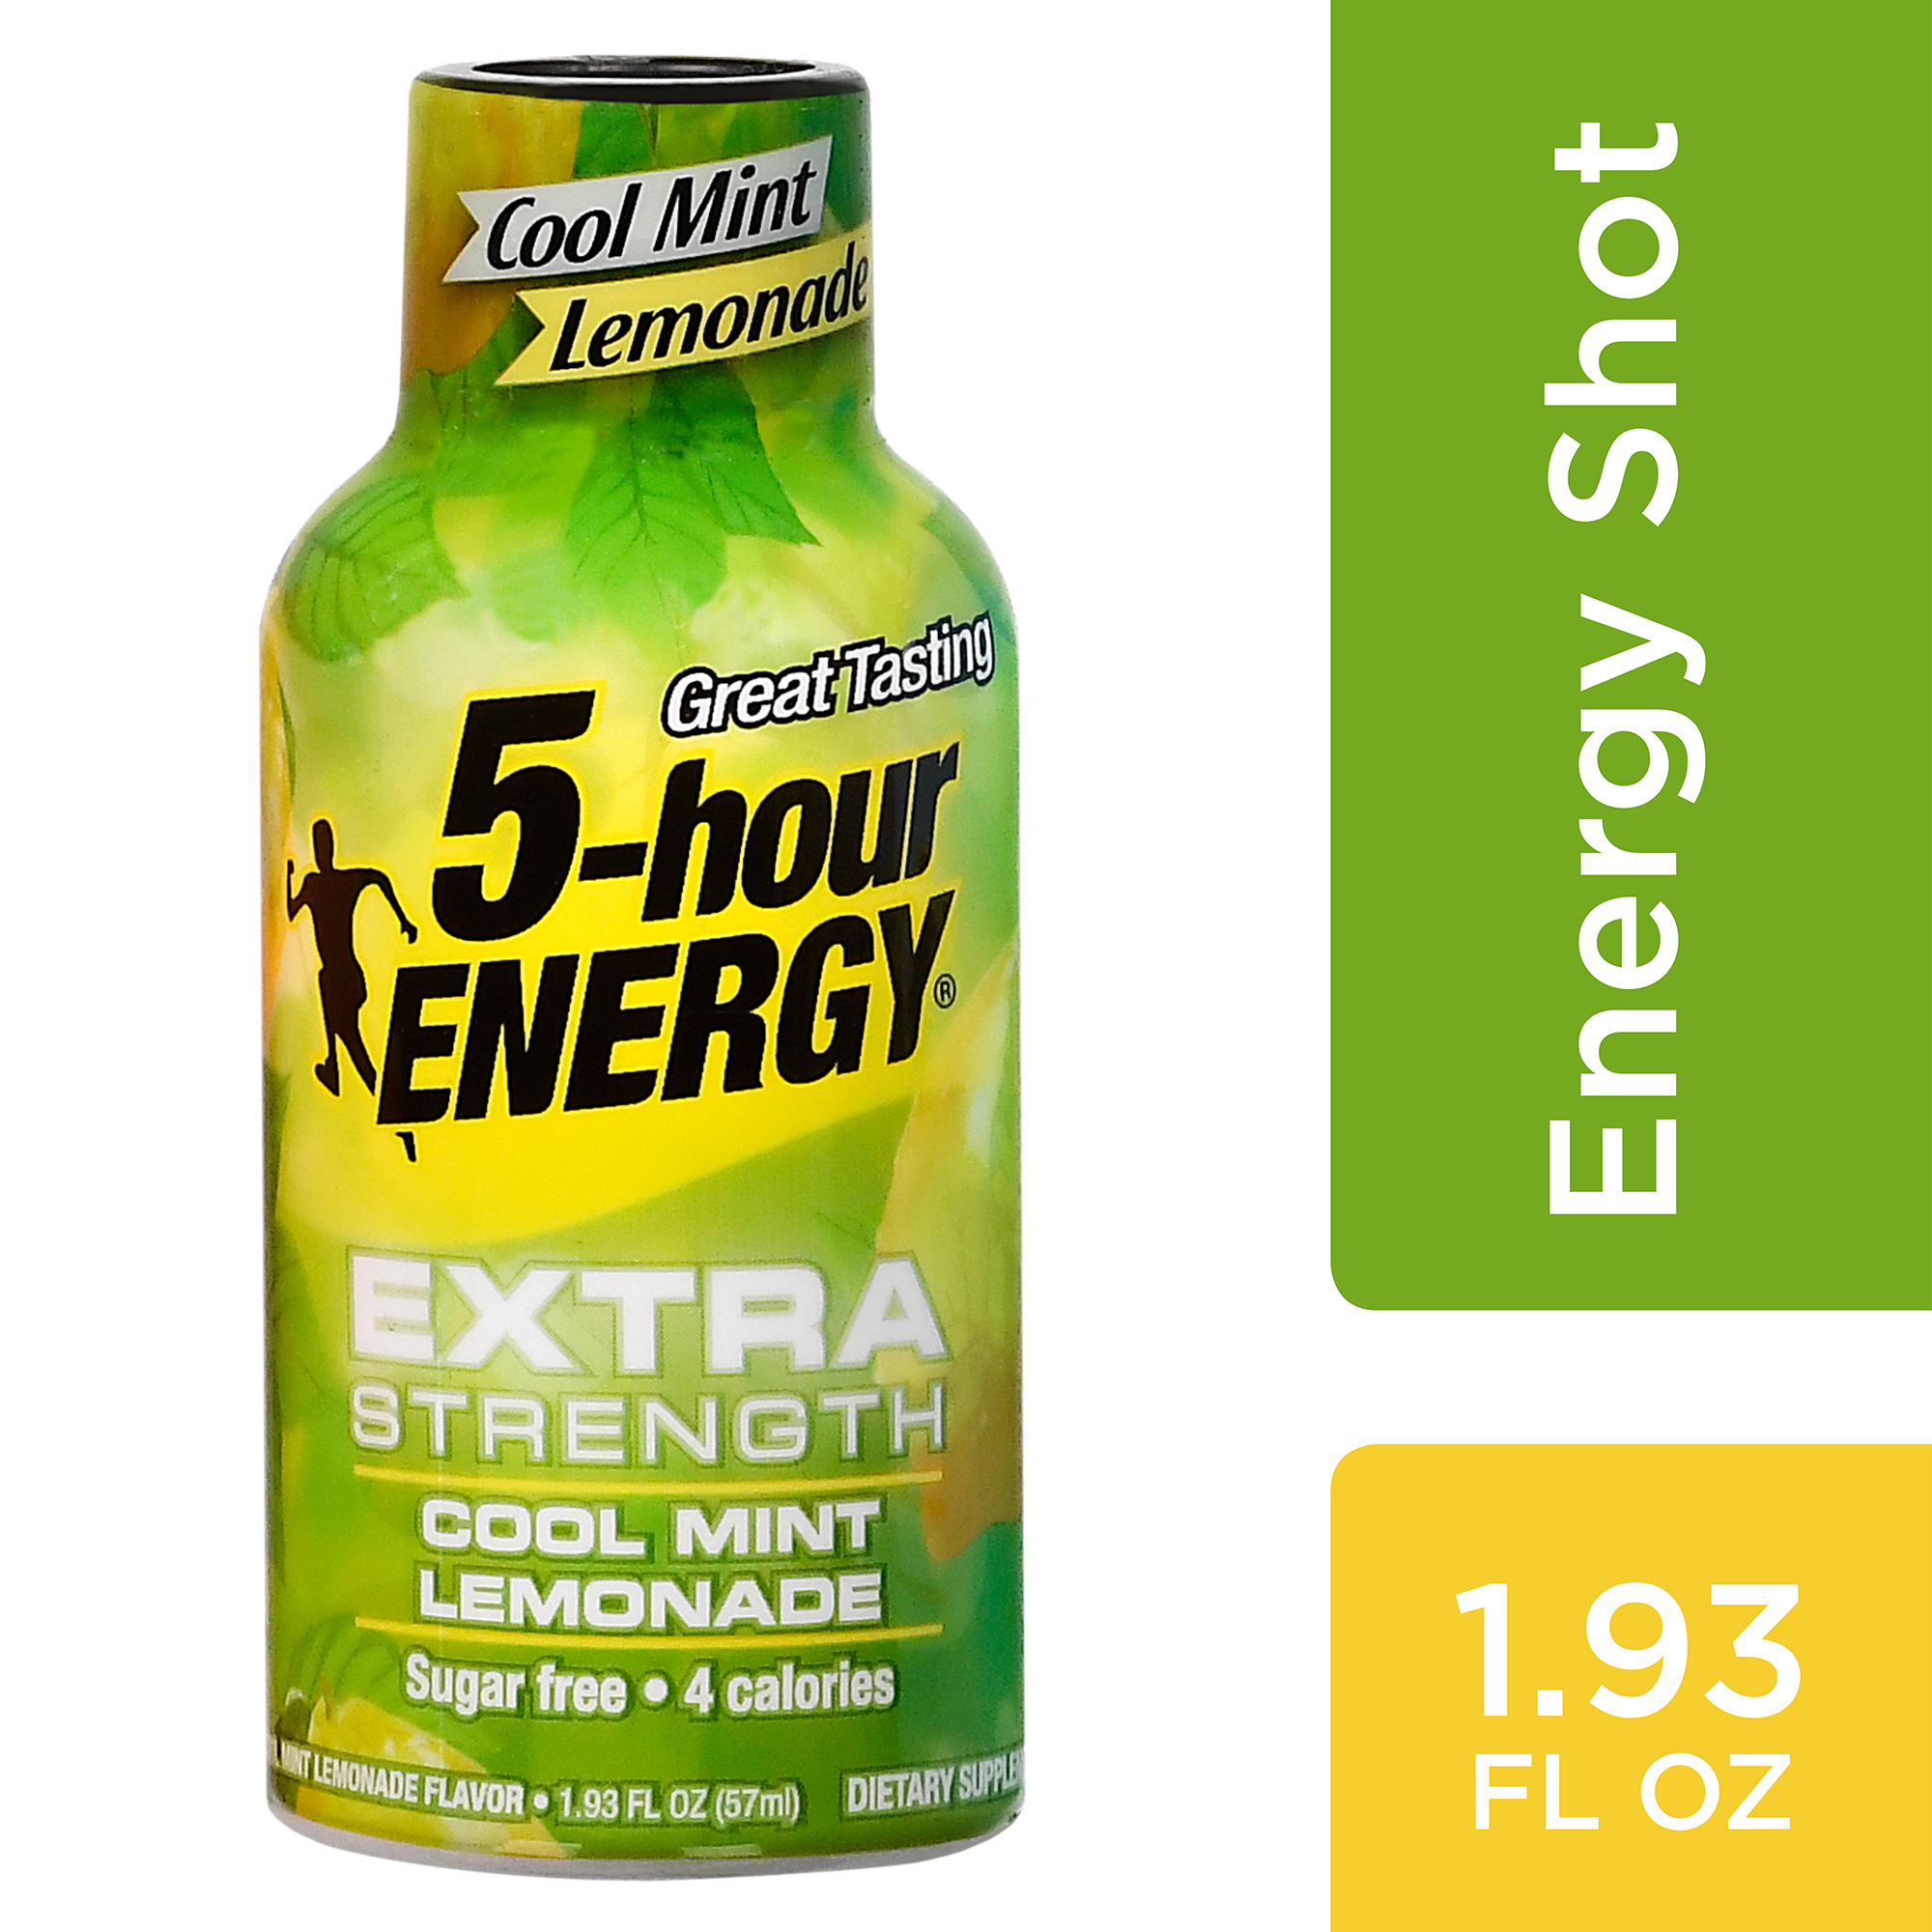 5-hour ENERGY® Extra Strength Cool Mint Lemonade Flavor, Low Calorie Single Energy Shot